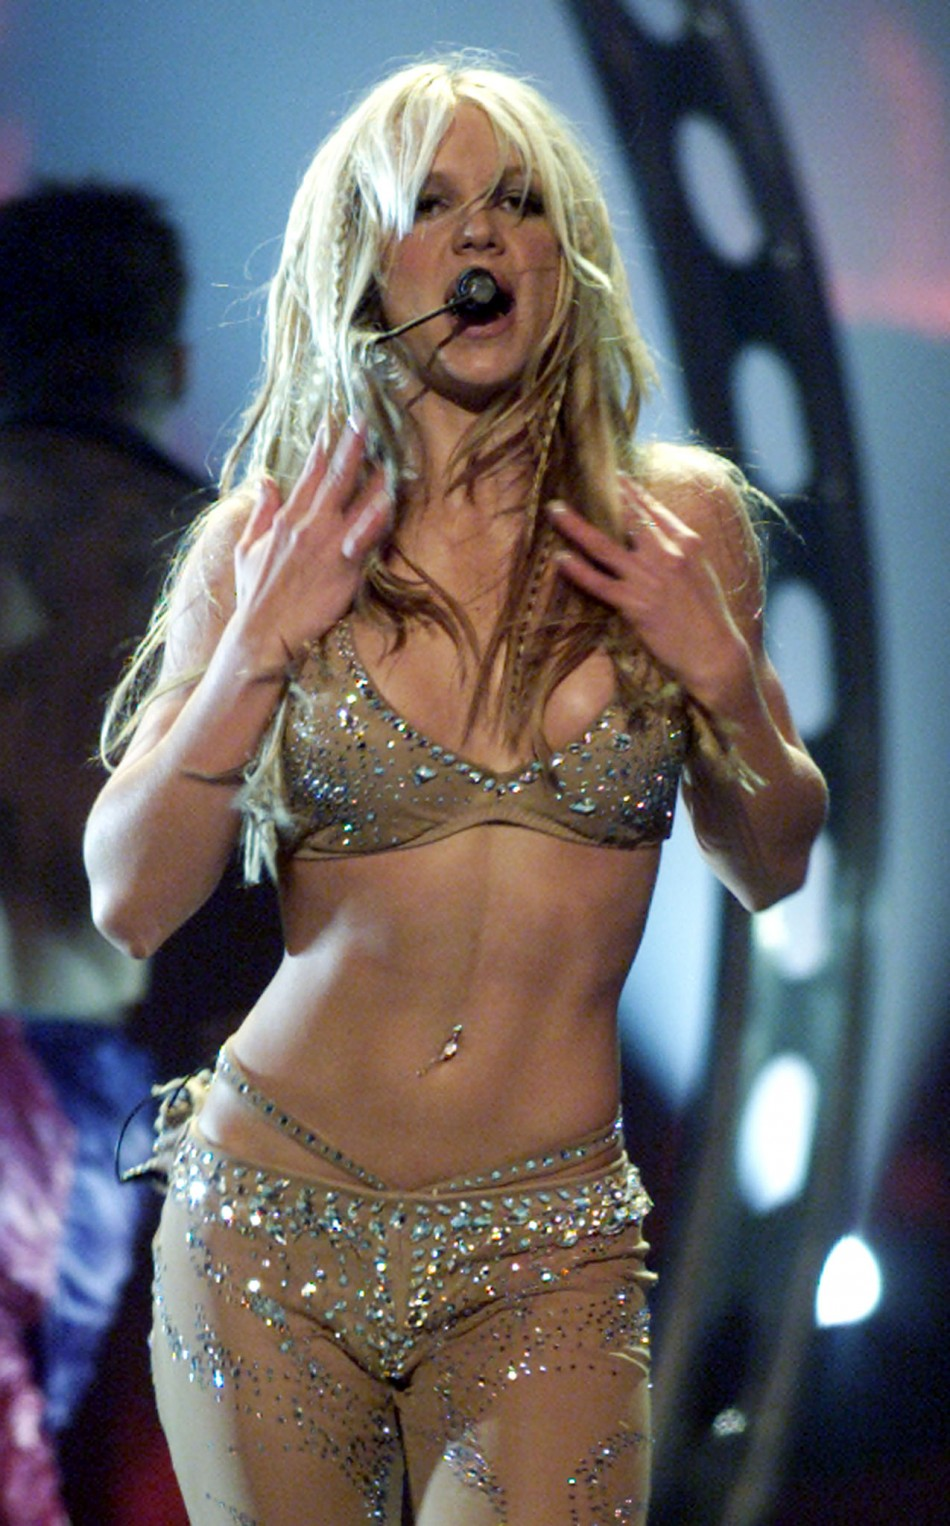 3. Britney Spears  Kanye West tied at 45